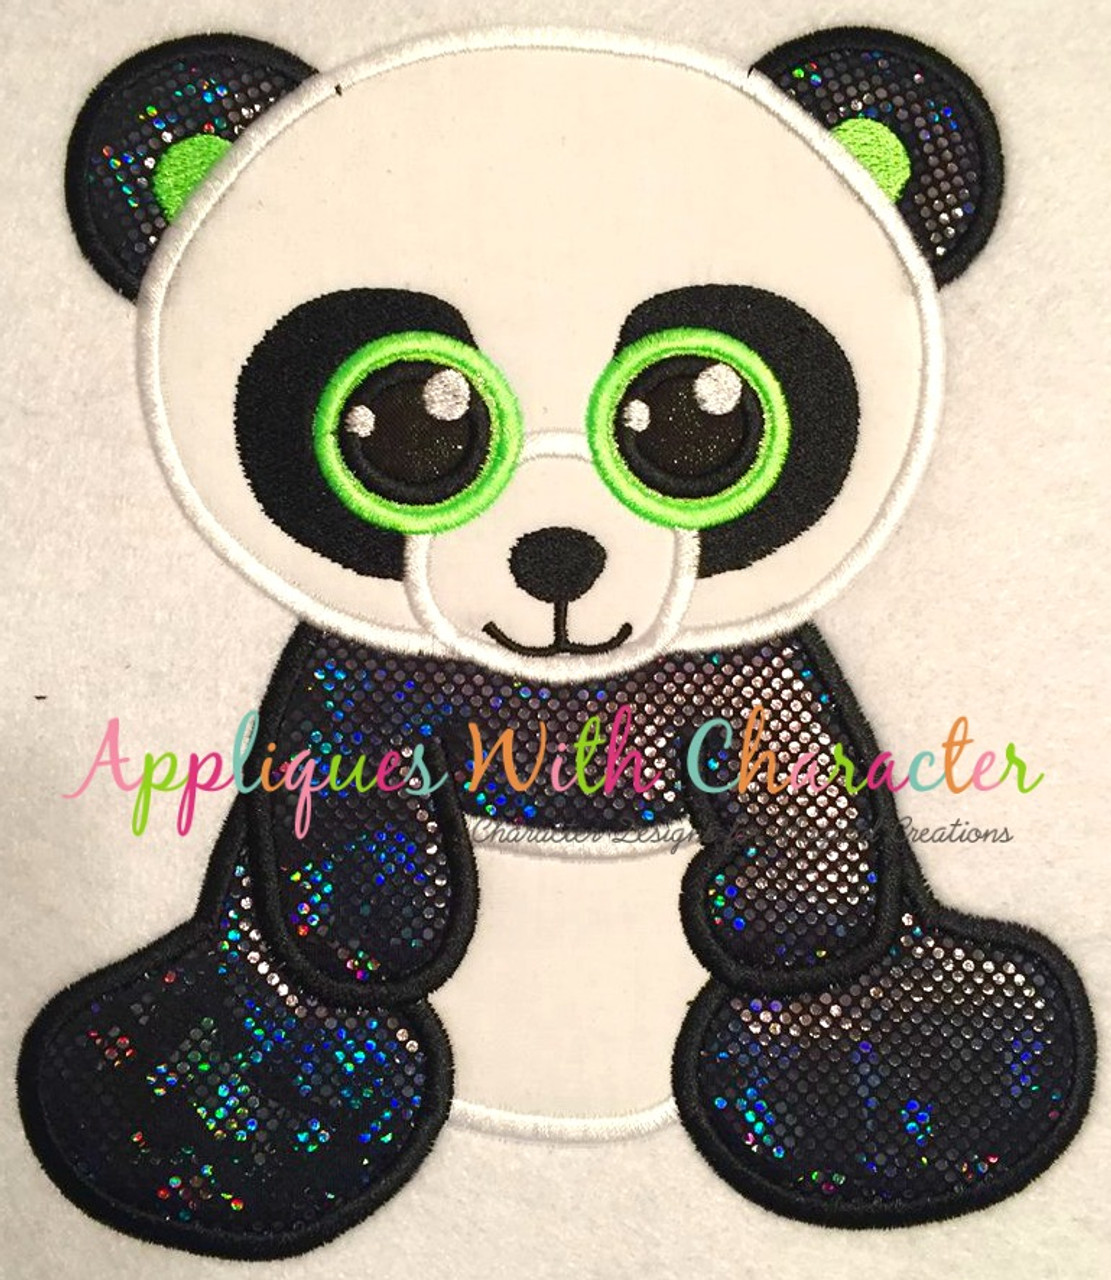 7ad0116edc9 Beanie Boo Panda Applique Design by Appliques With Character